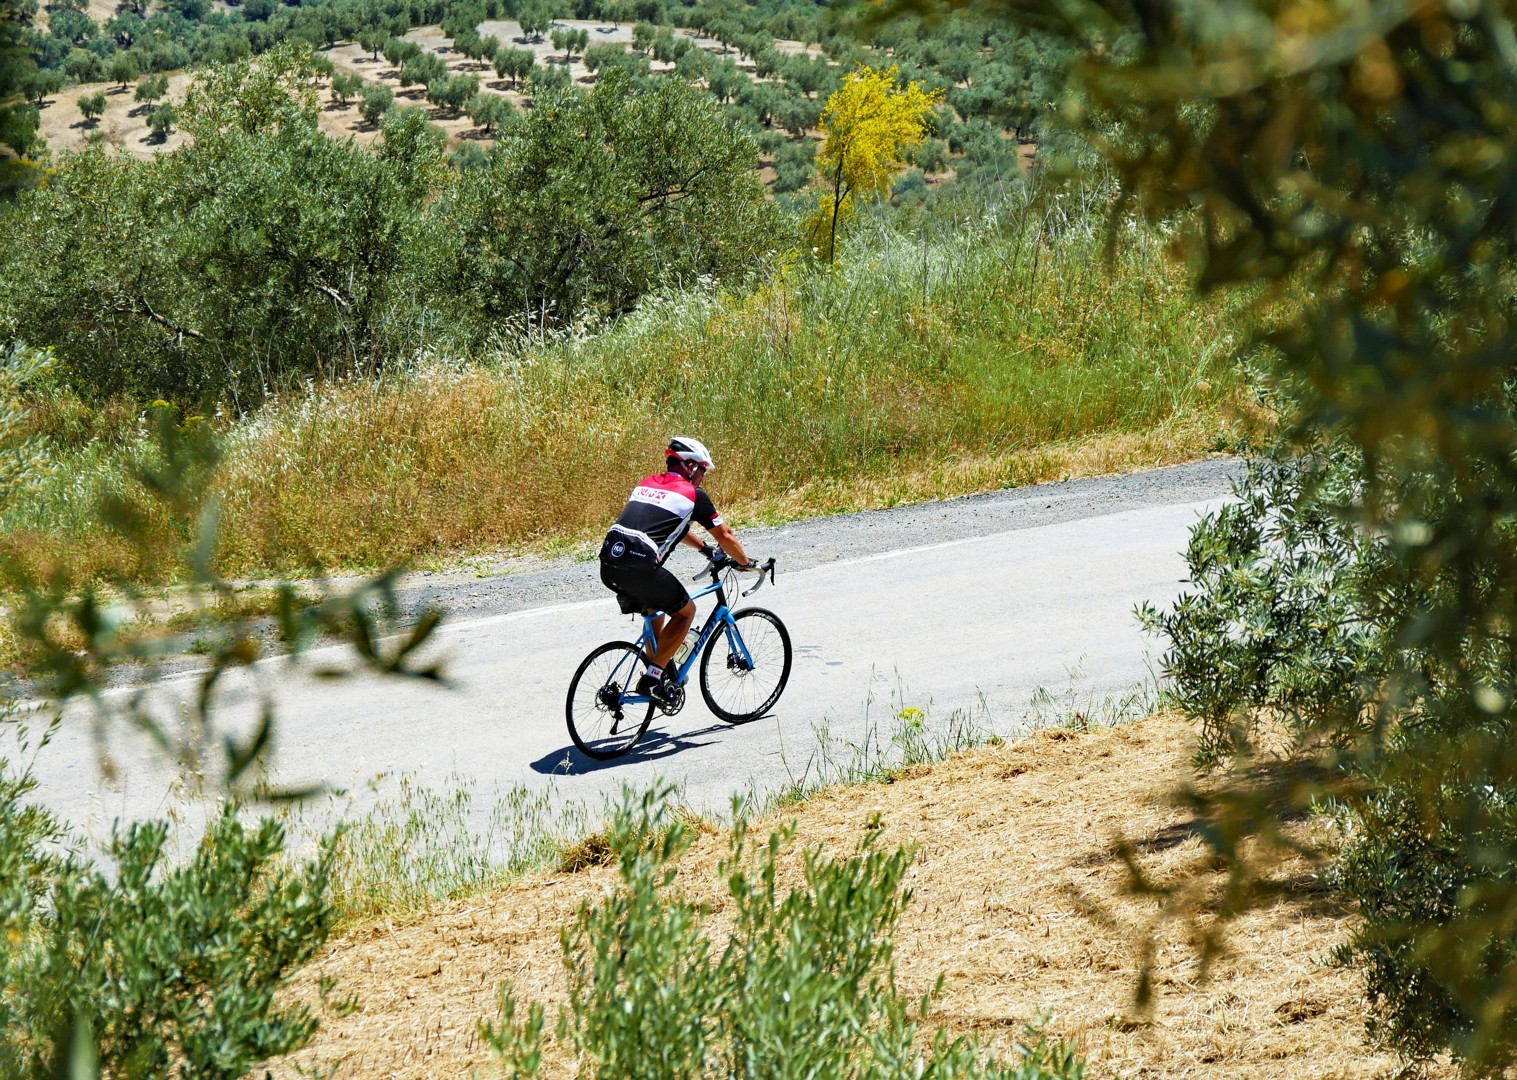 road-cycling-through-olive-groves-andalucia.jpg - Spain - Basque Country to Andalucia - North to South - 16 Day - Guided Road Cycling Holiday - Road Cycling